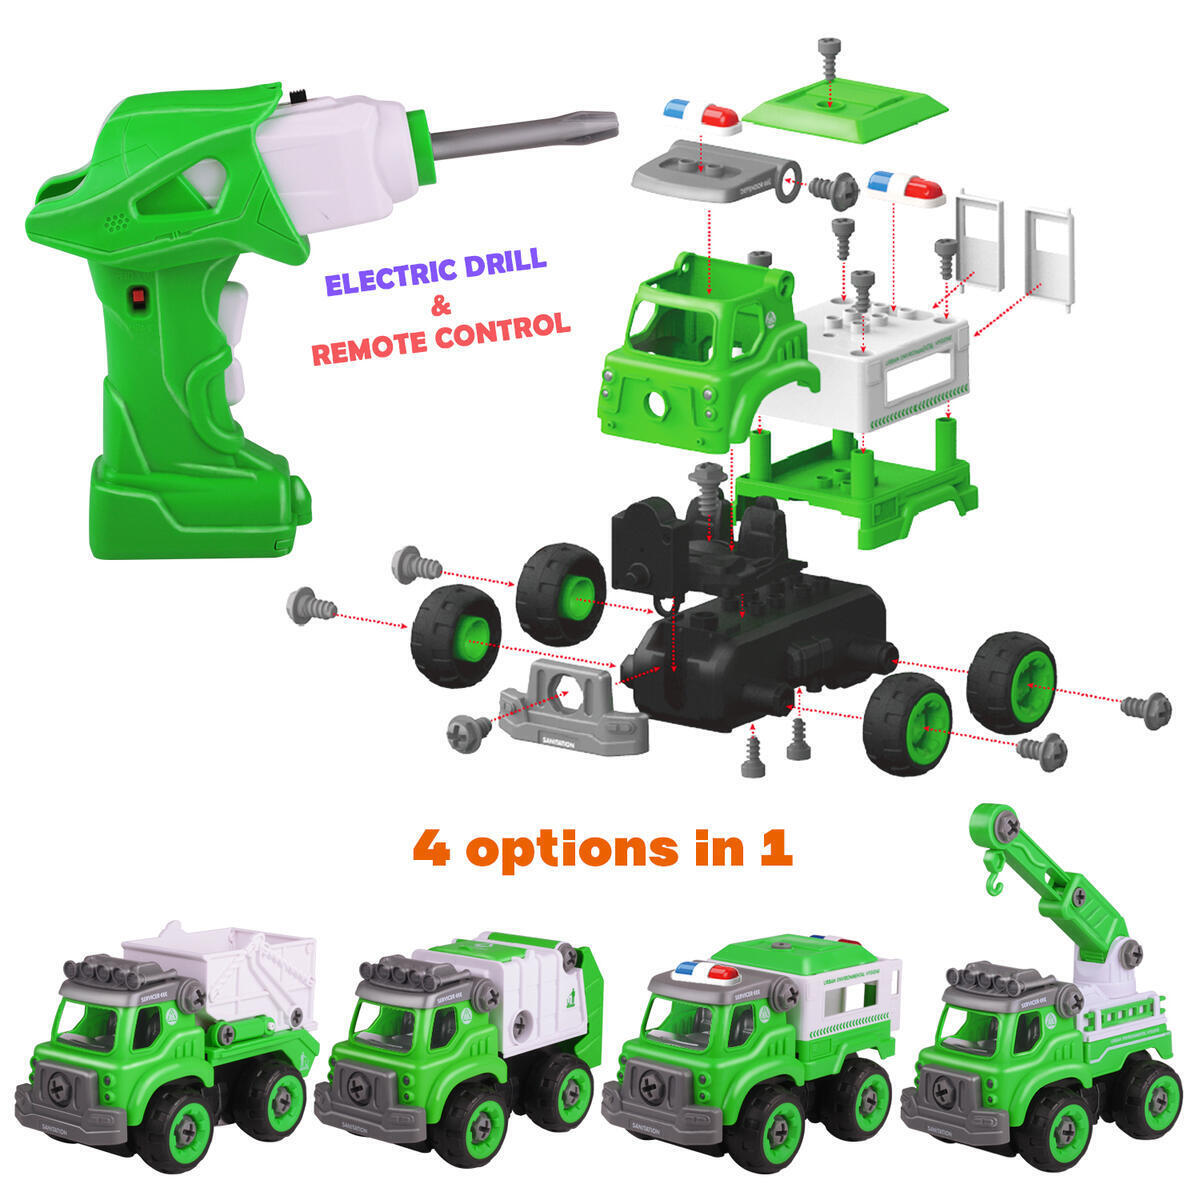 YAHI & CO 4 in 1 Sets Toys for Boys & Girls Kit for Kids Children Ages 4 5 6 7 8 Years Old [76 pcs]